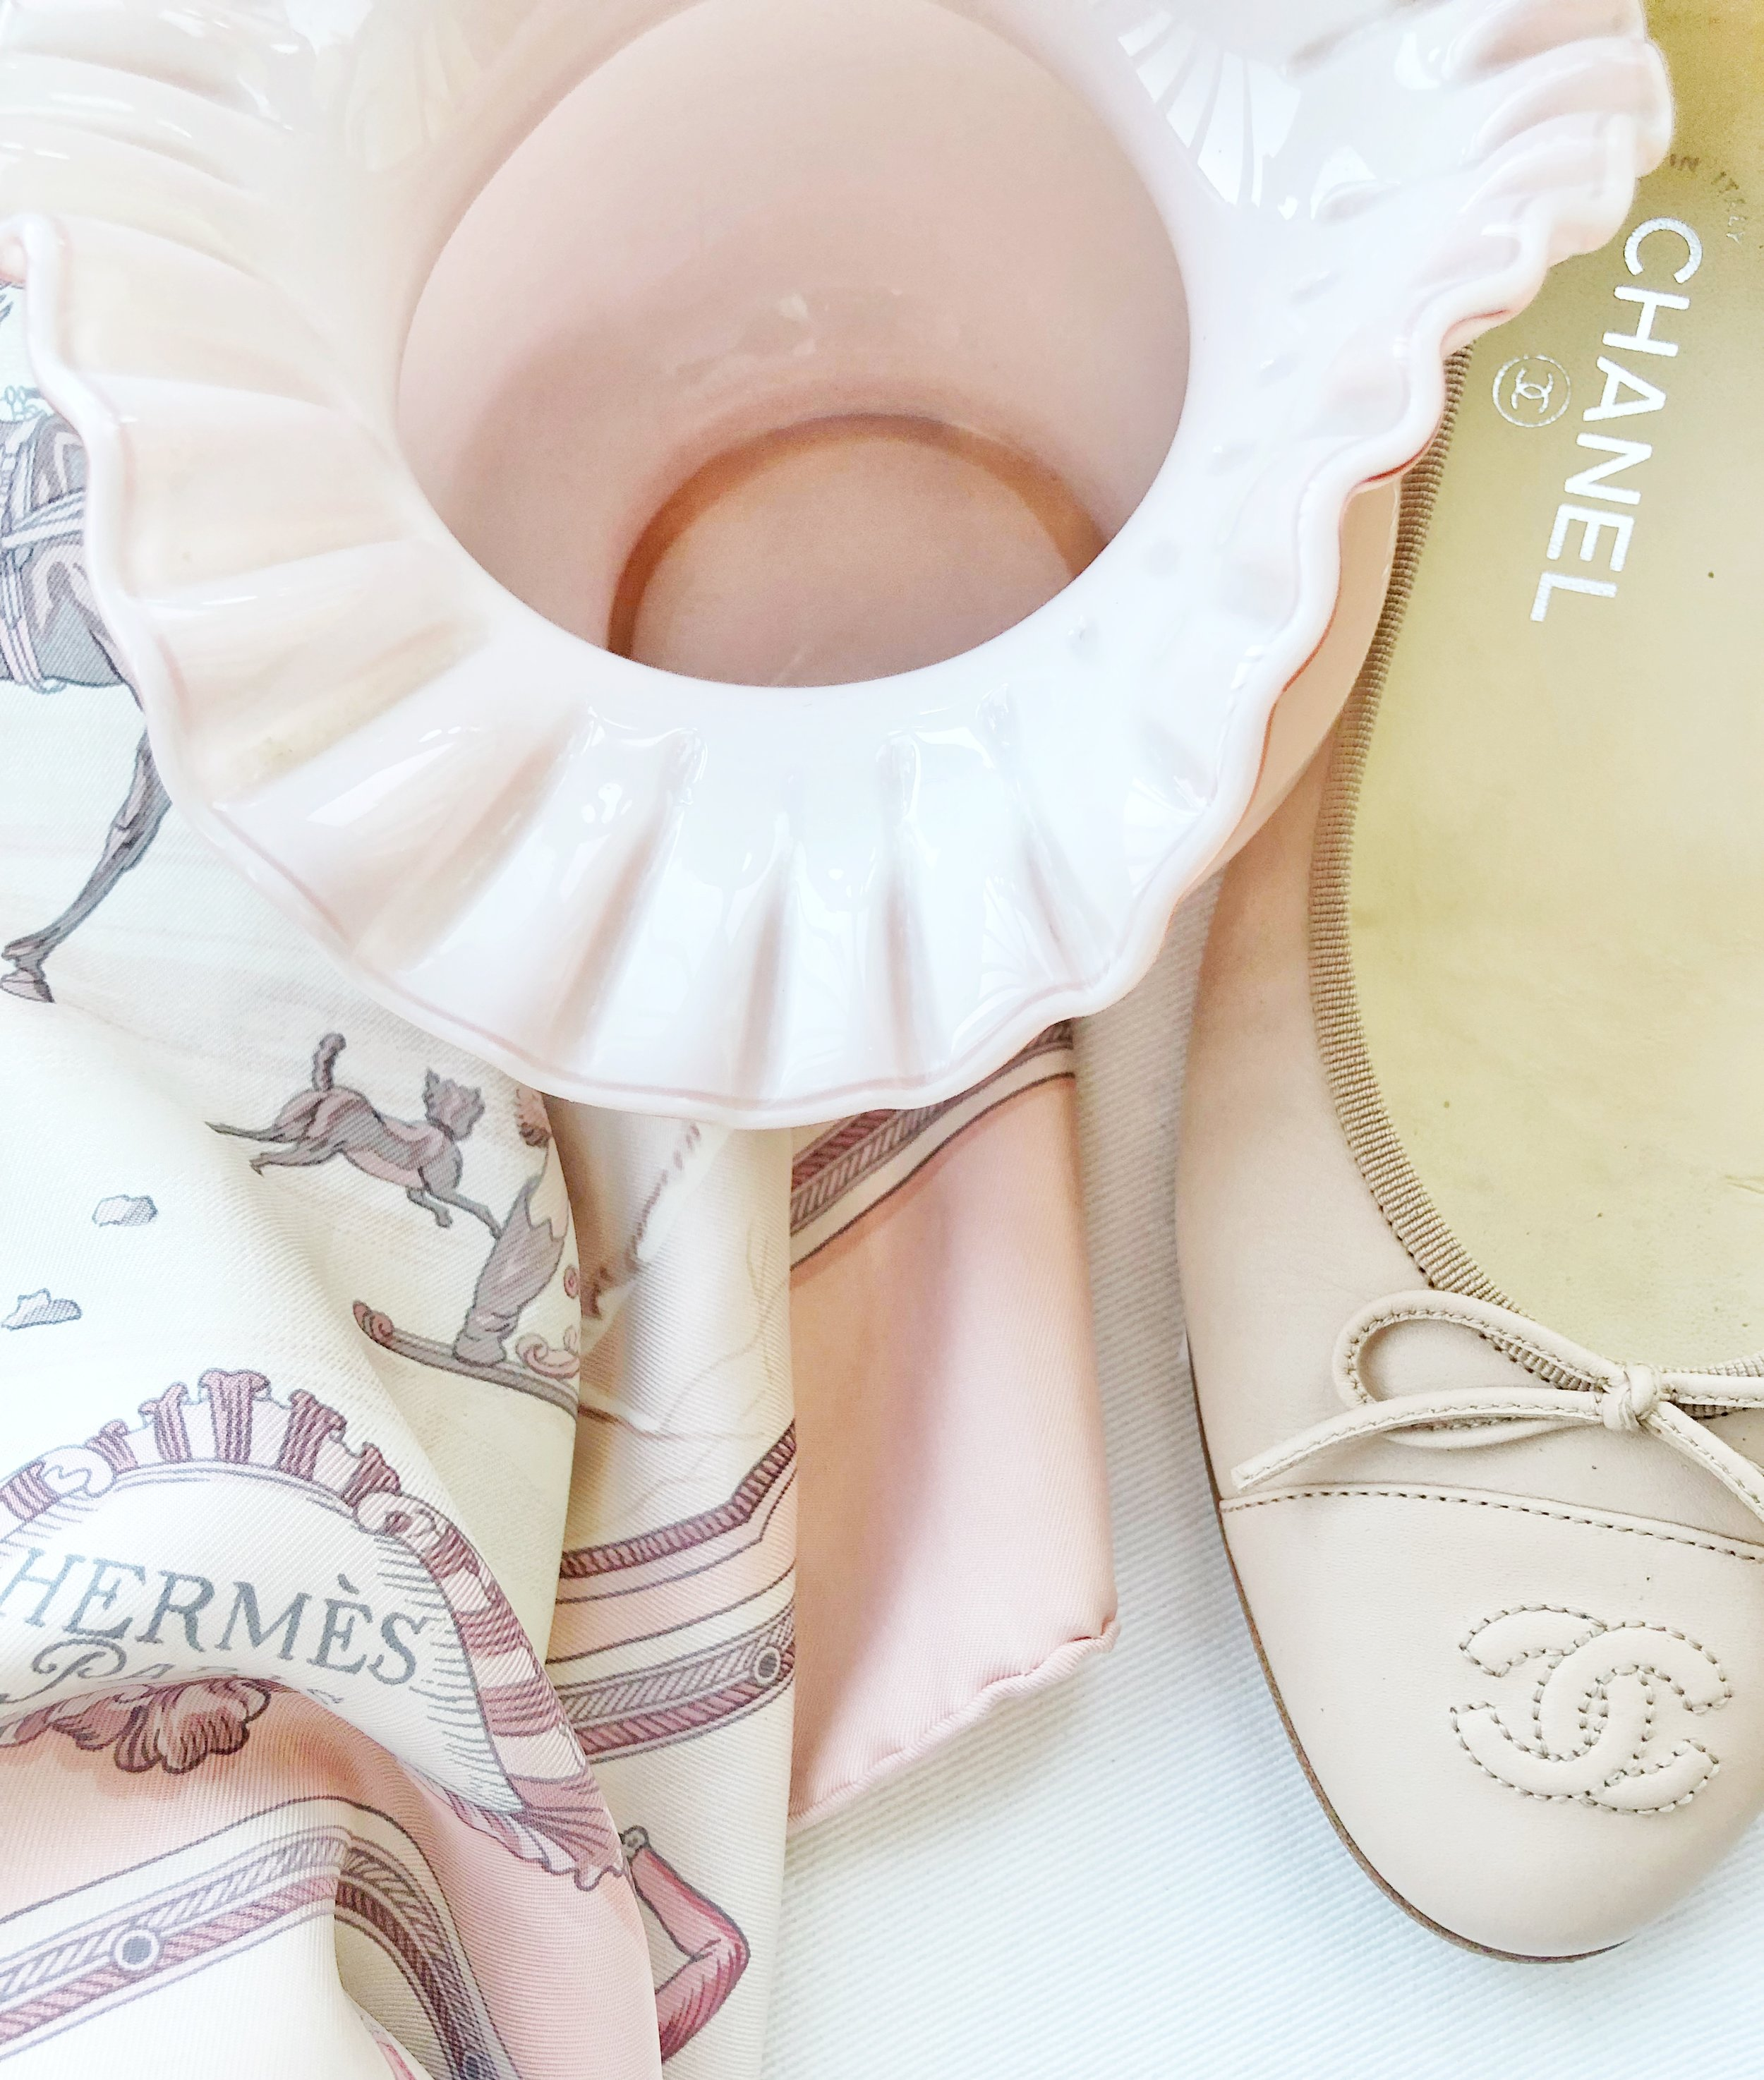 Hermes Scarf & Chanel Ballet Flats Paired with a $2 Vintage Vase